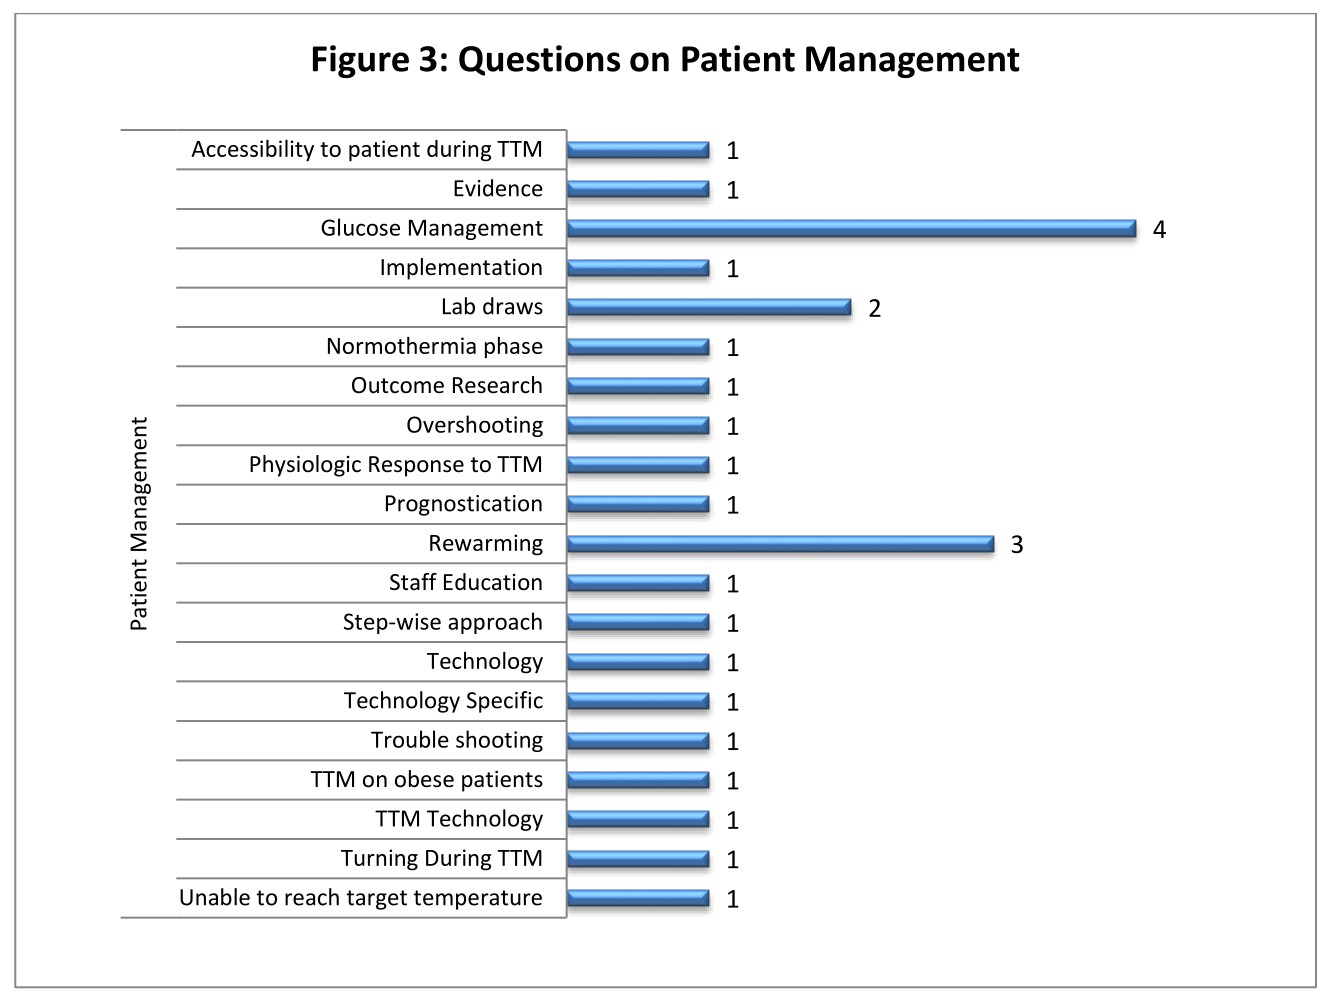 Figure 3 - Questions on Patient Management